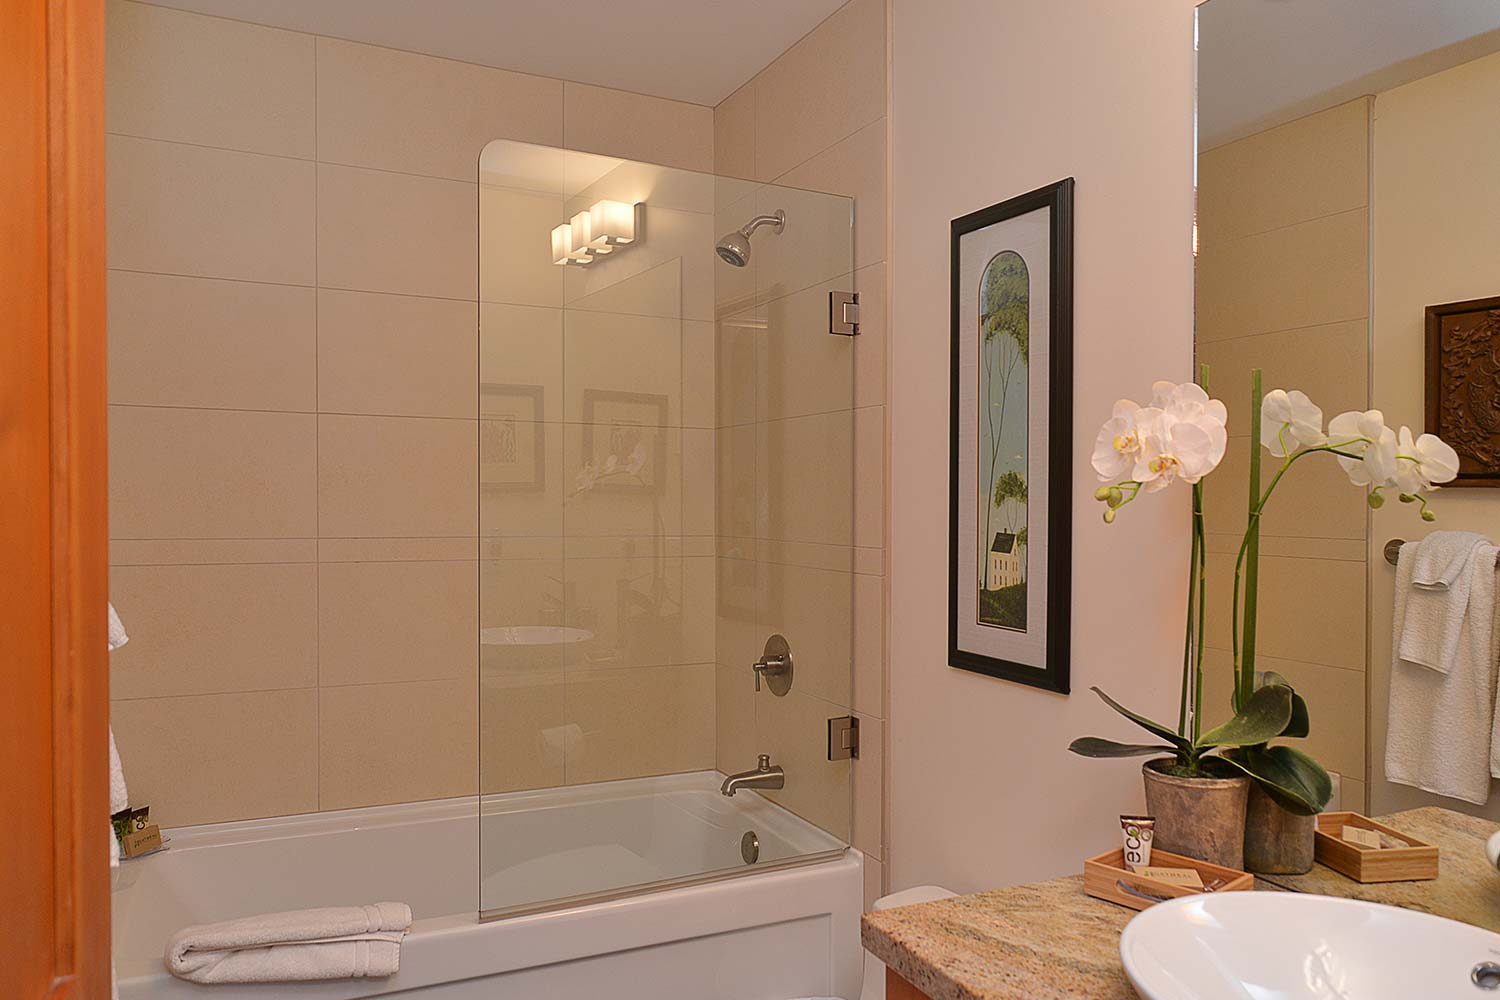 One of the bathrooms of this vacation house rental has a shower with a connected bathtub, artwork on the wall, and flowers.